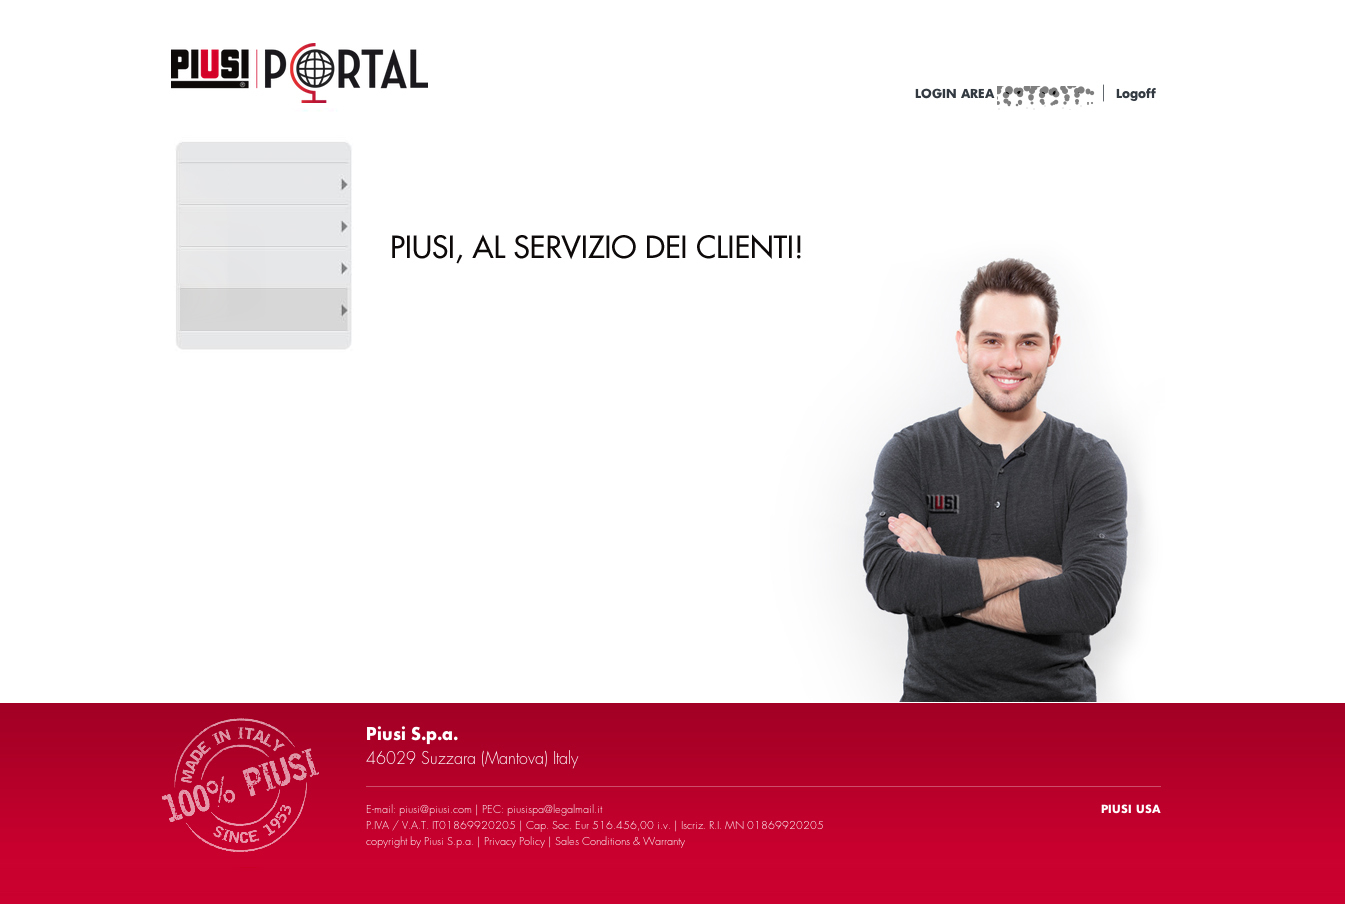 Piusi welcome page